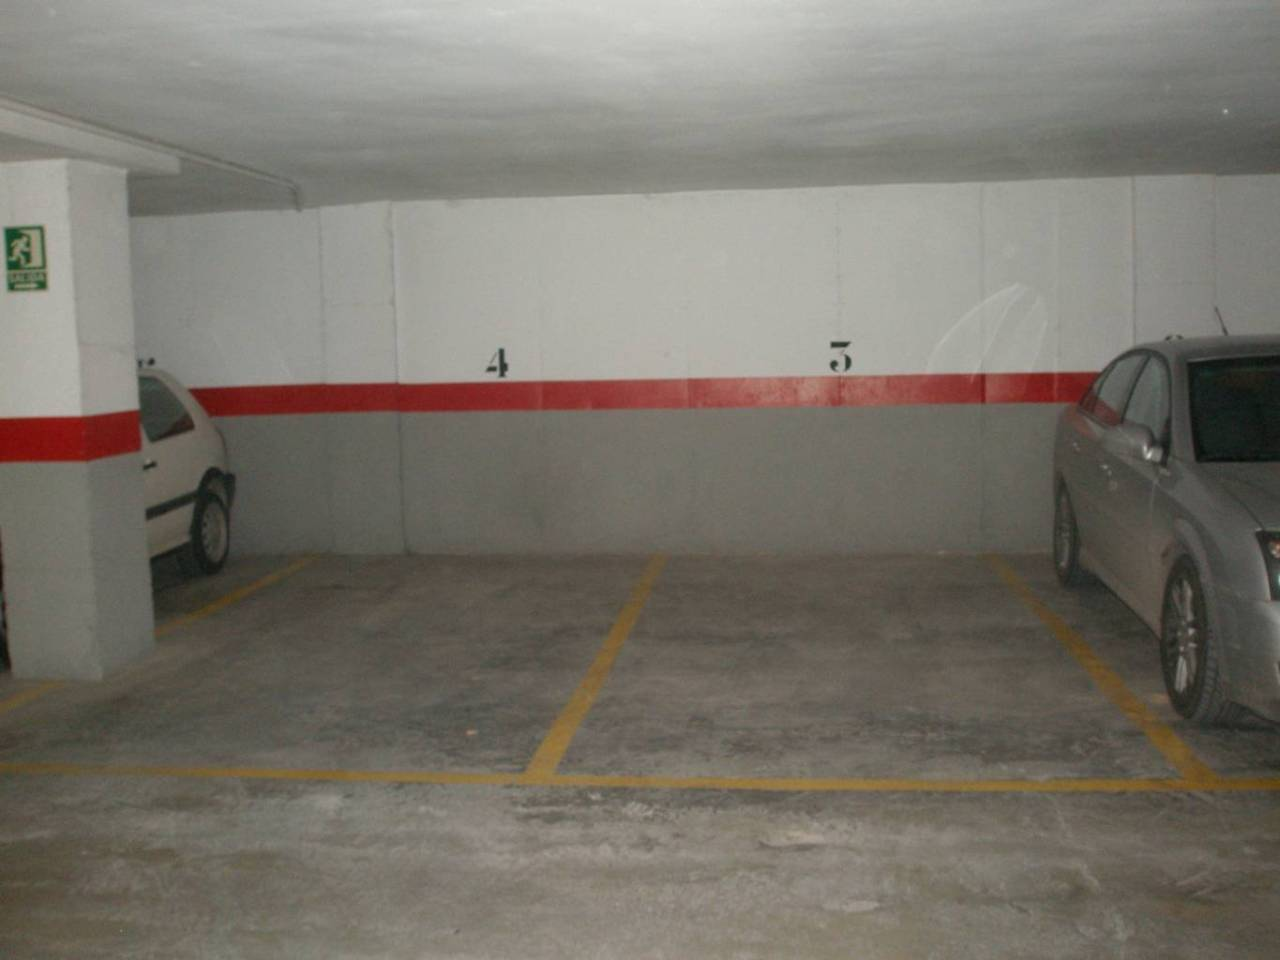 Parking voiture  San carlos. Superf. 10 m², 1 plazas, subterráneo.